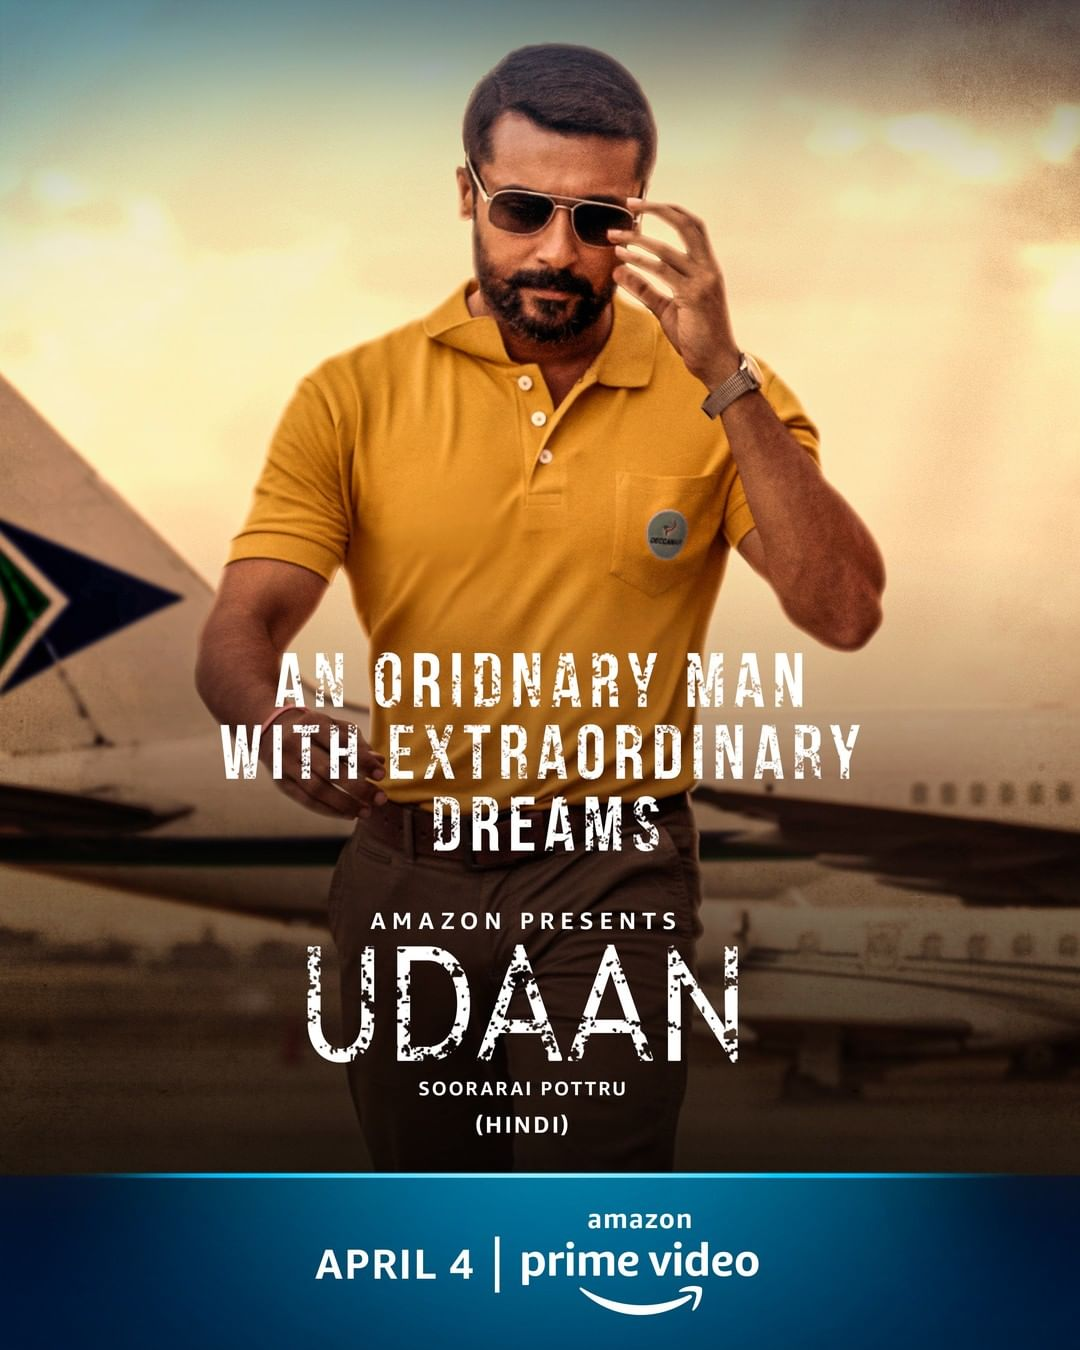 Download Soorarai Pottru (UDAAN) (2020) Hindi WEB-DL Dual Audio [Hindi (ORG DD5.1) & Tamil DD5.1] 1080p 720p 480p [x264/HEVC] HD | Full Movie